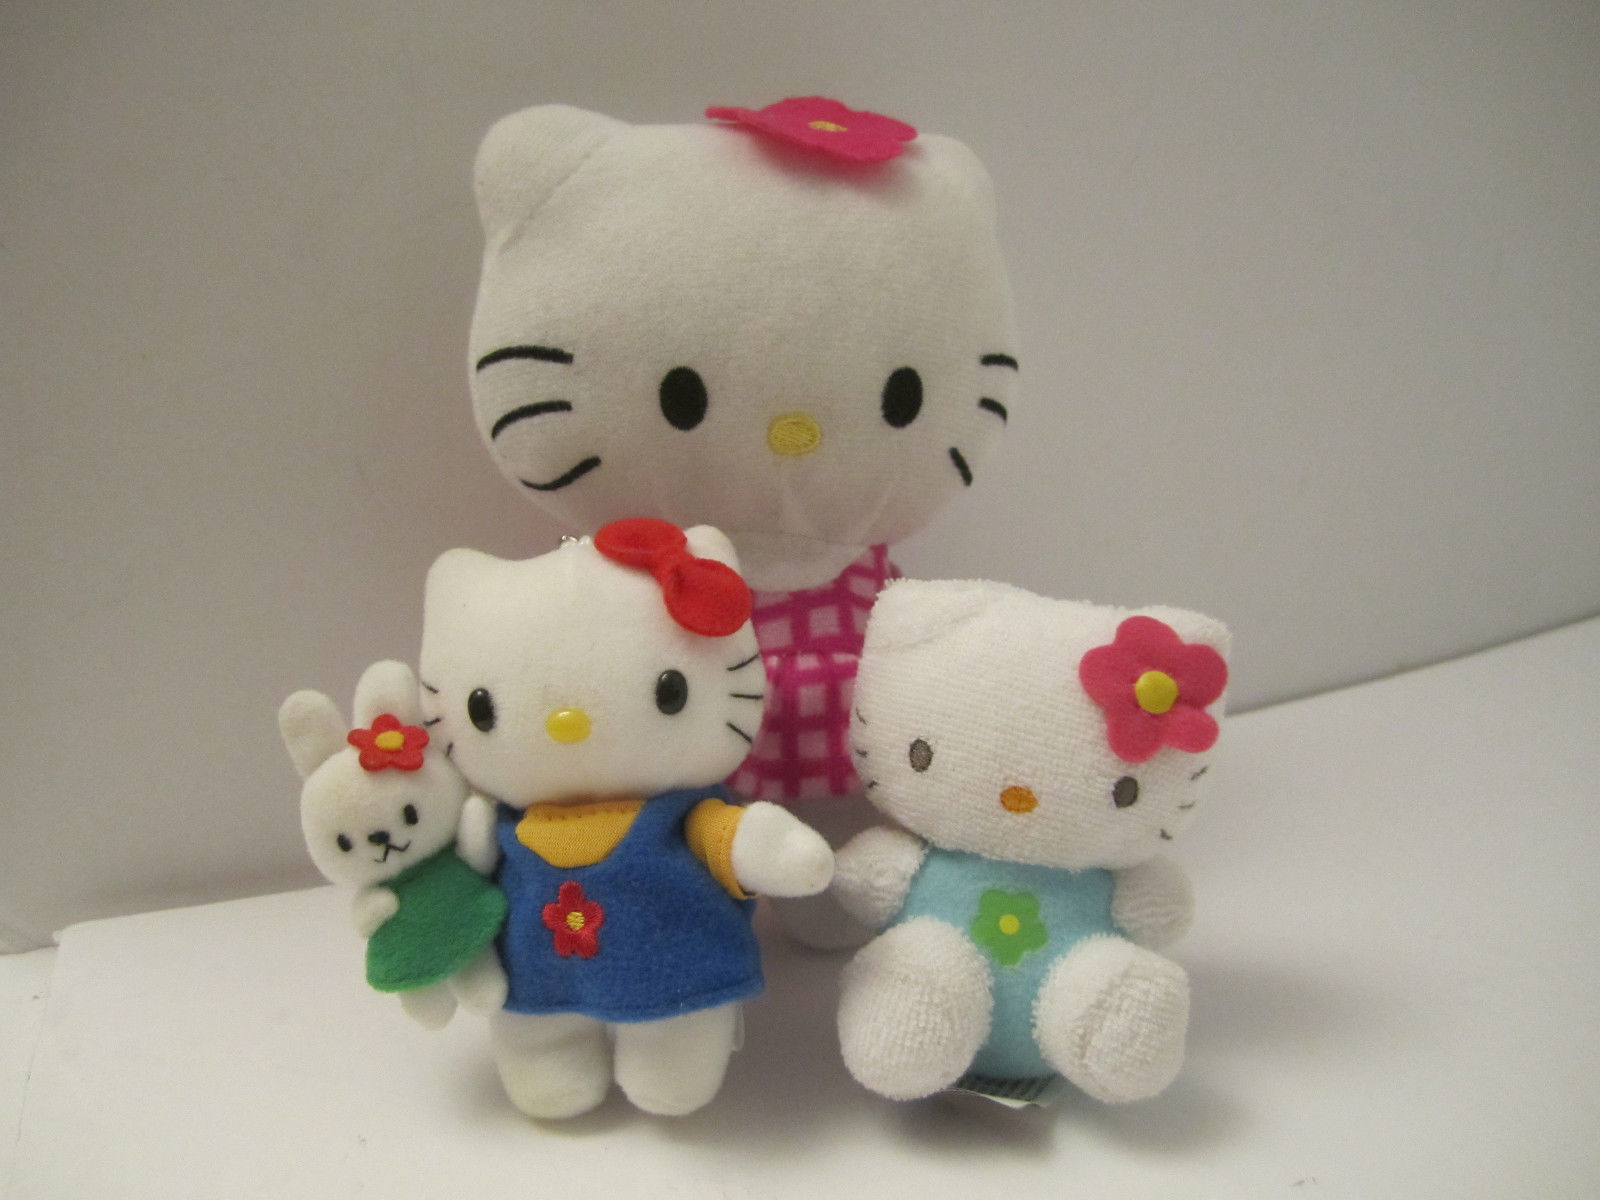 CUTE Trio of Small Plush Hello Kitty Sanrio Stuffed Cat Animal Toys NM Pre-Owned